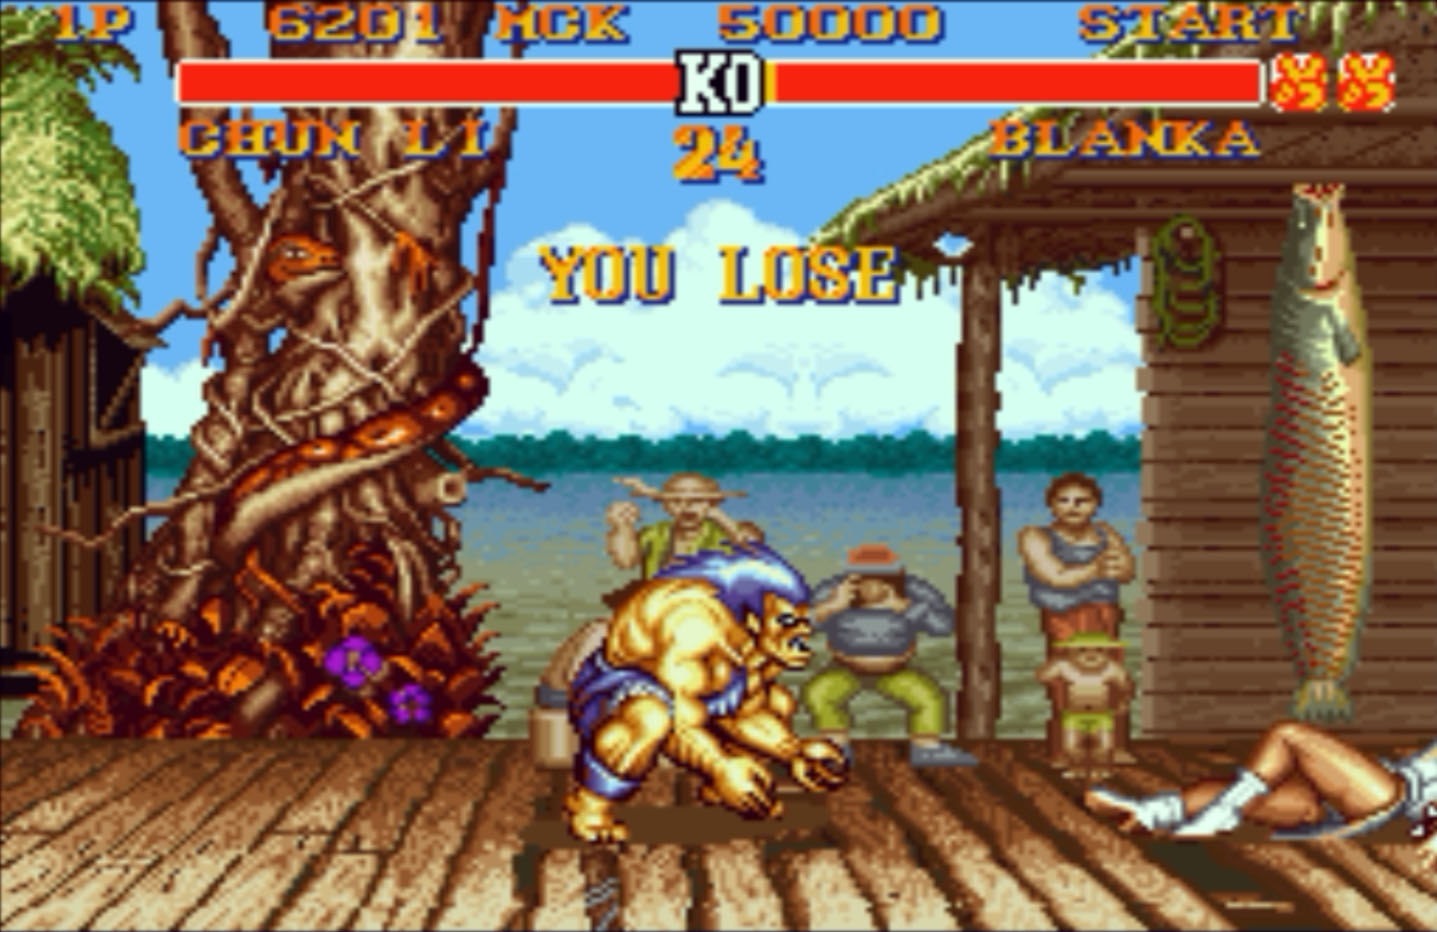 You Lose Street Fighter II #2